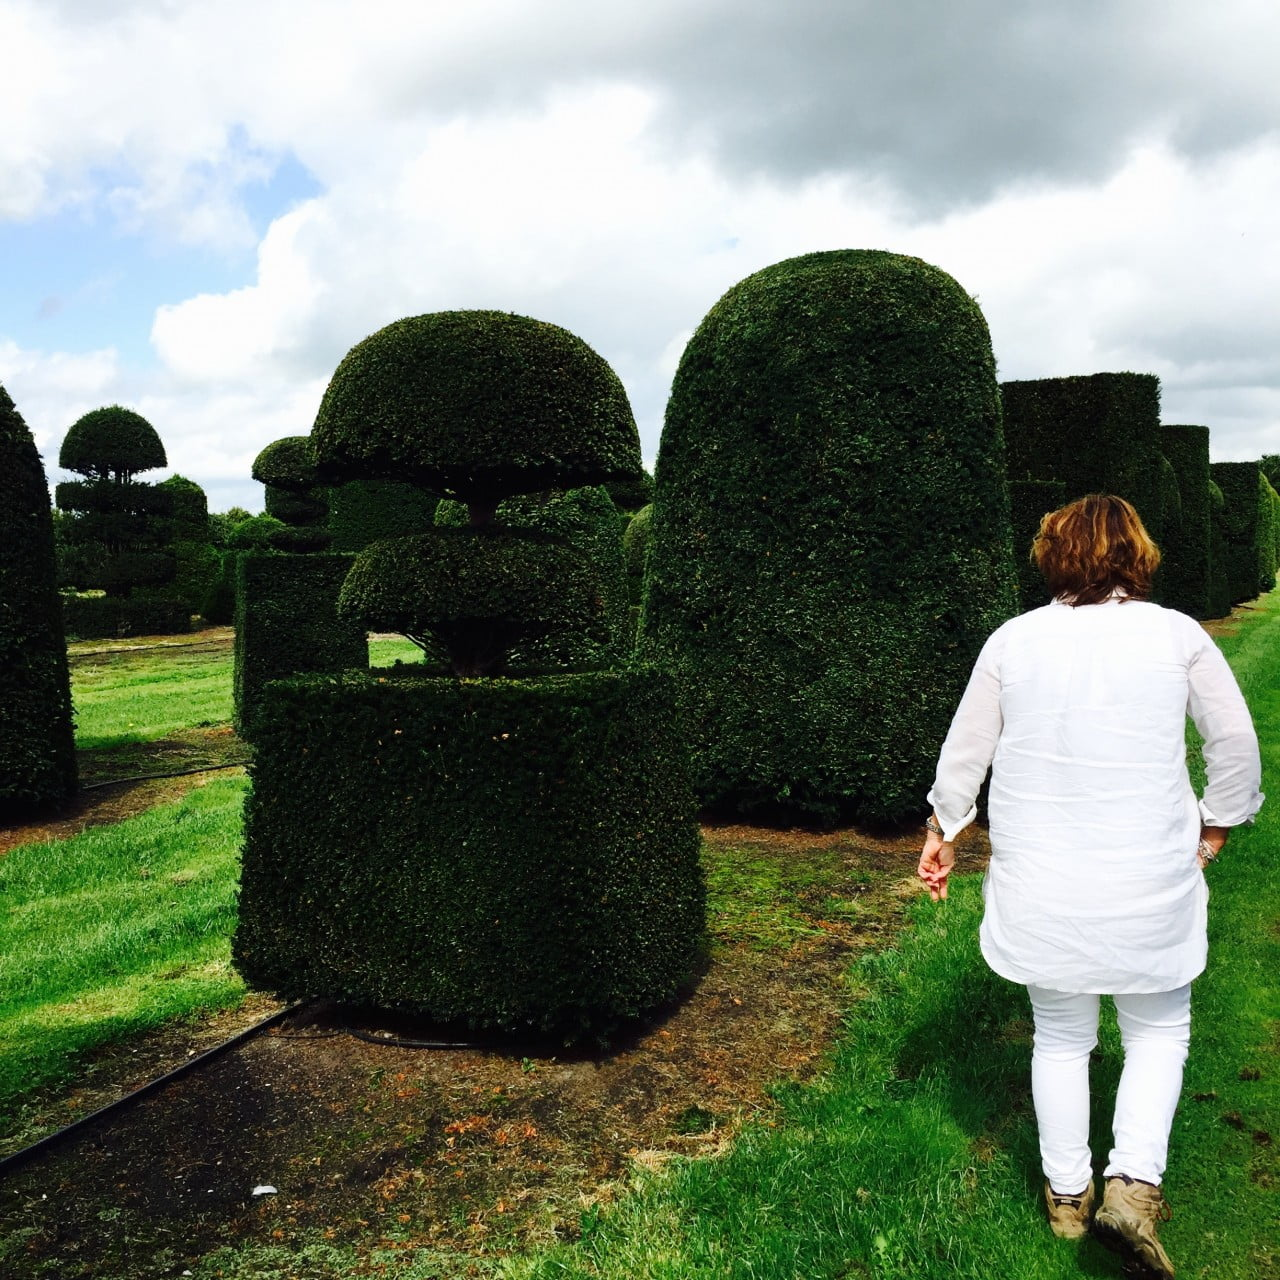 Huge Yew topiary specimens in the field that we were choosing for my clients